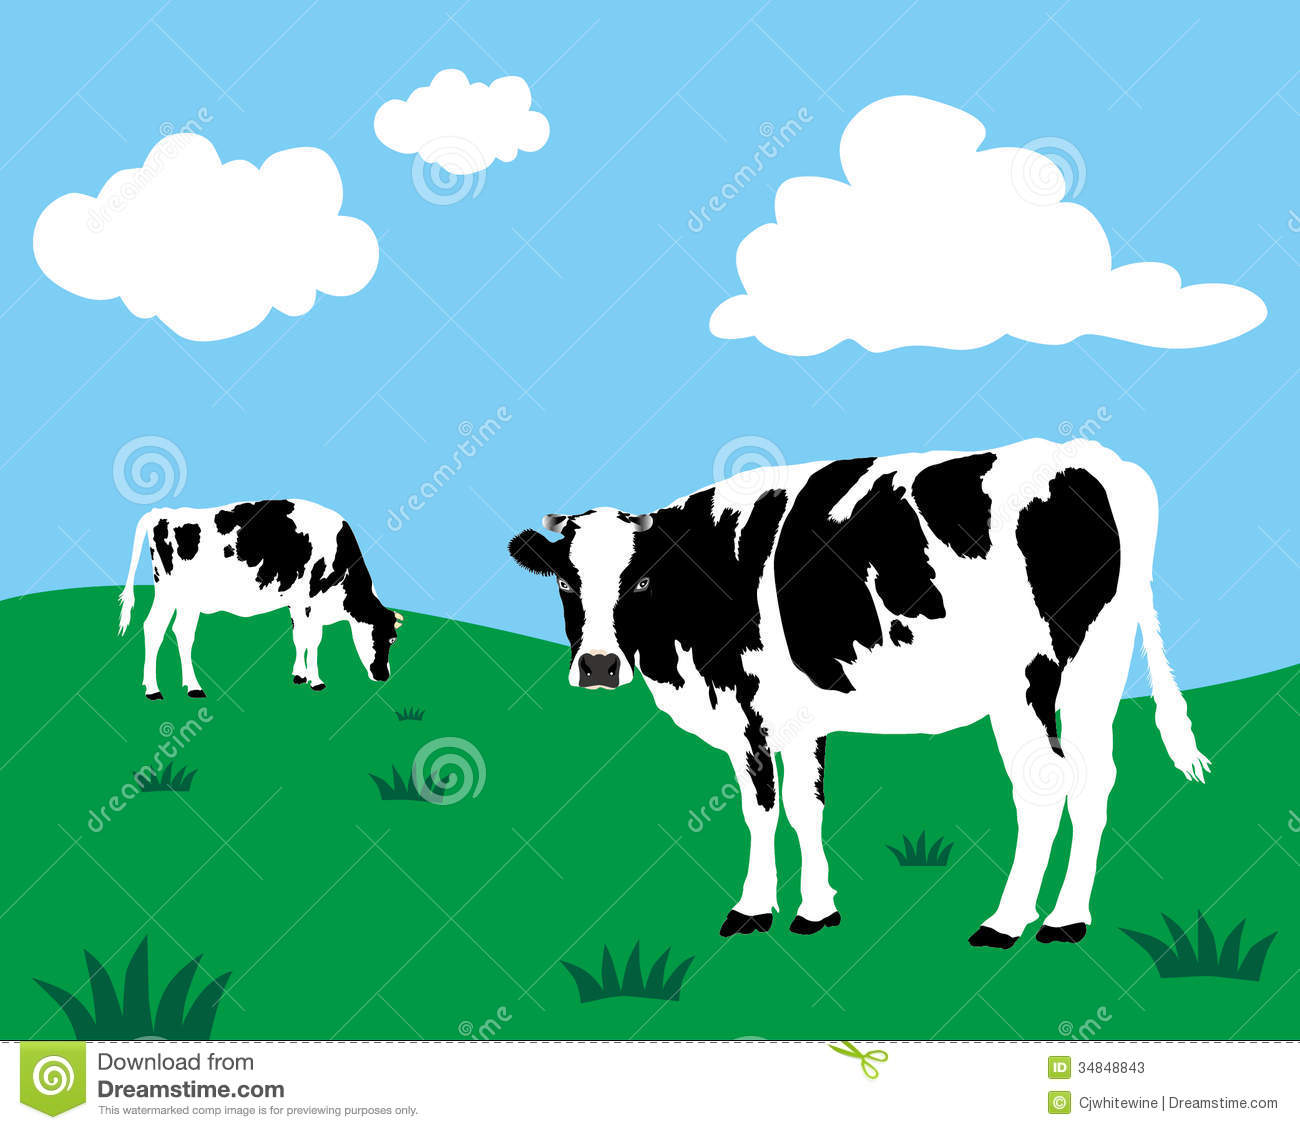 Cattle Cartoons Illustrations